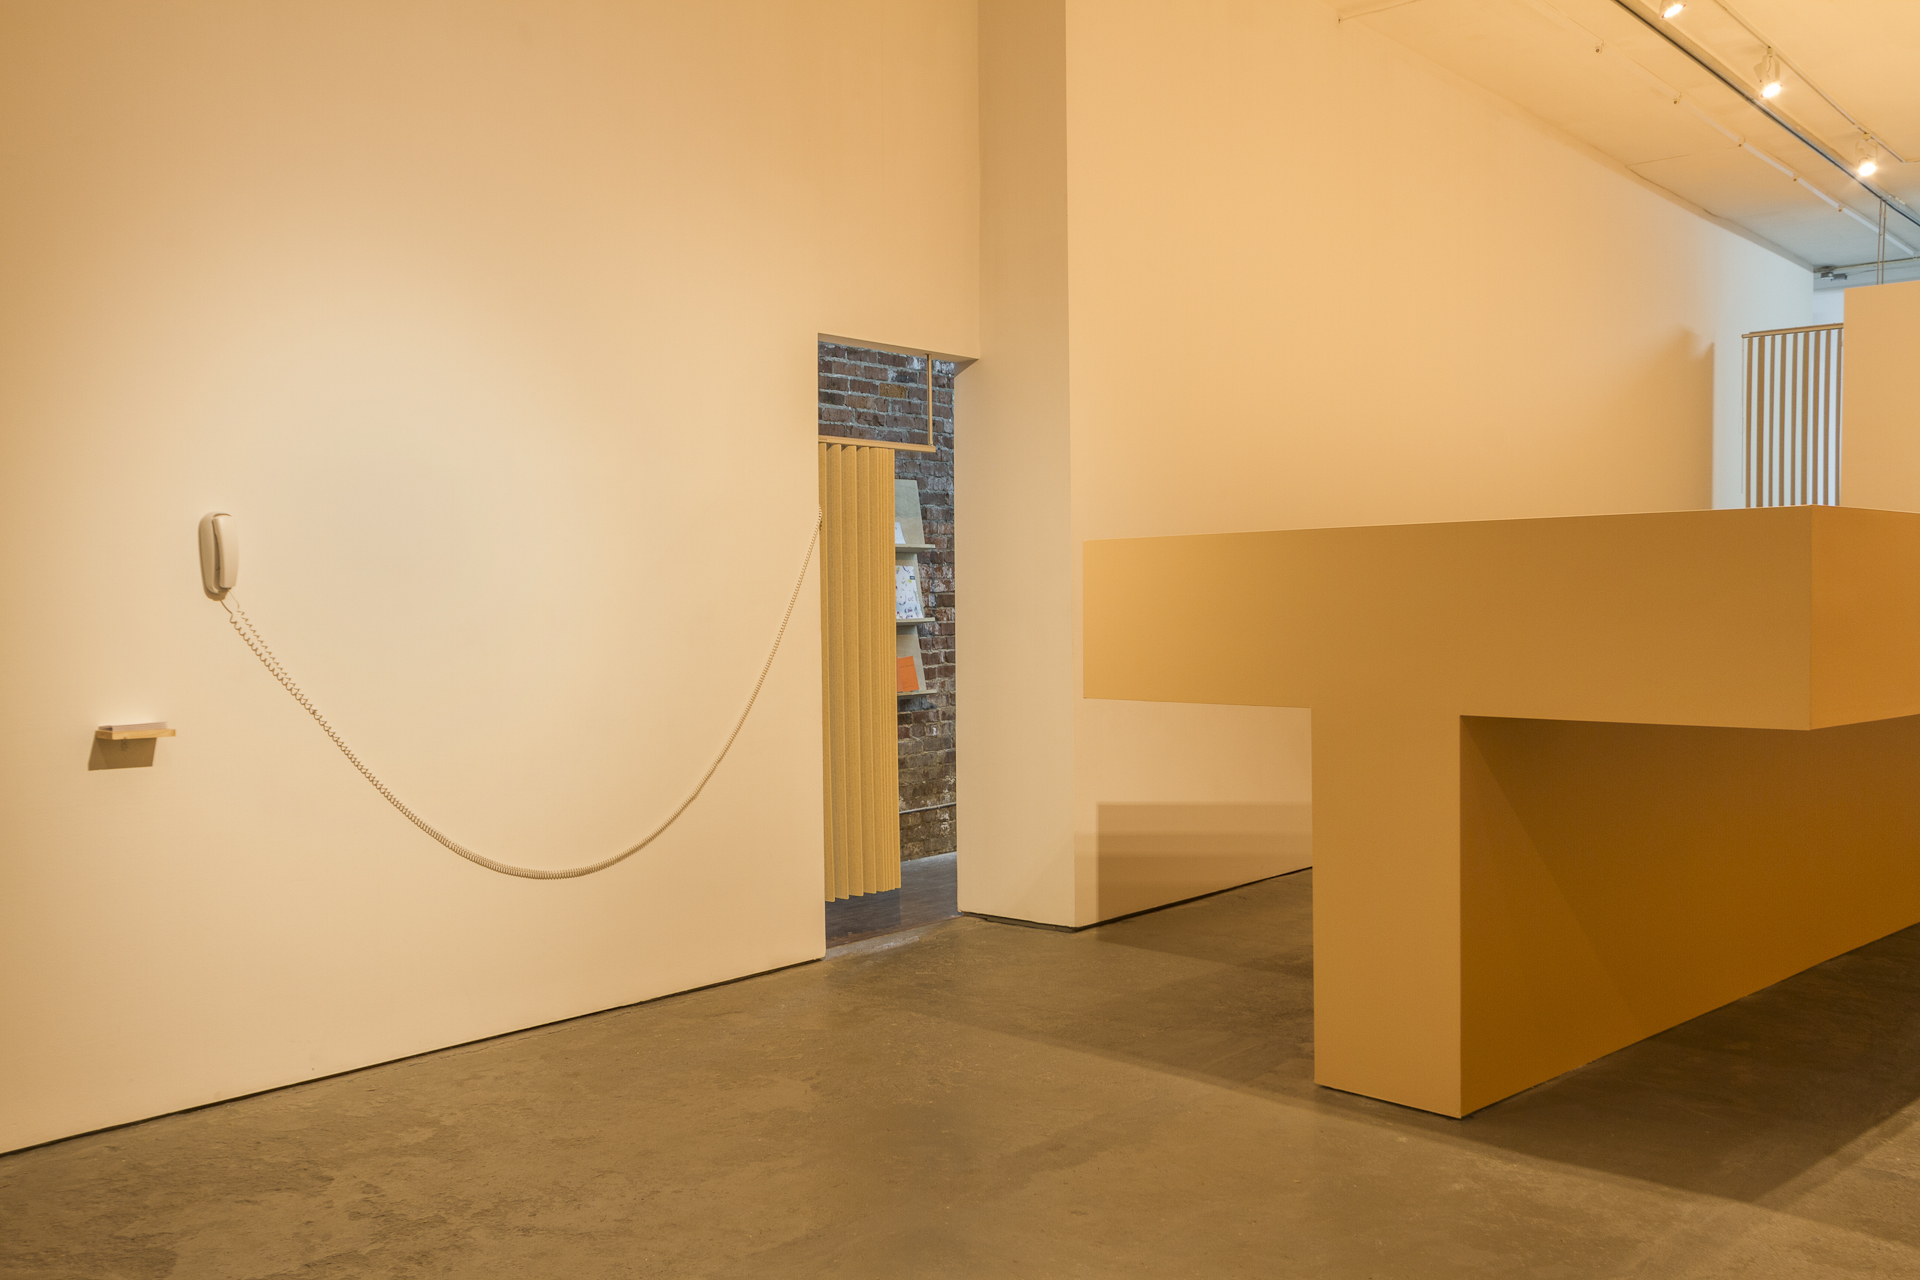 Installation shot including Hold on, Untitled (smize) and Thanks!, Kalli Niedoba, 2014 – Photo by Dennis Ha